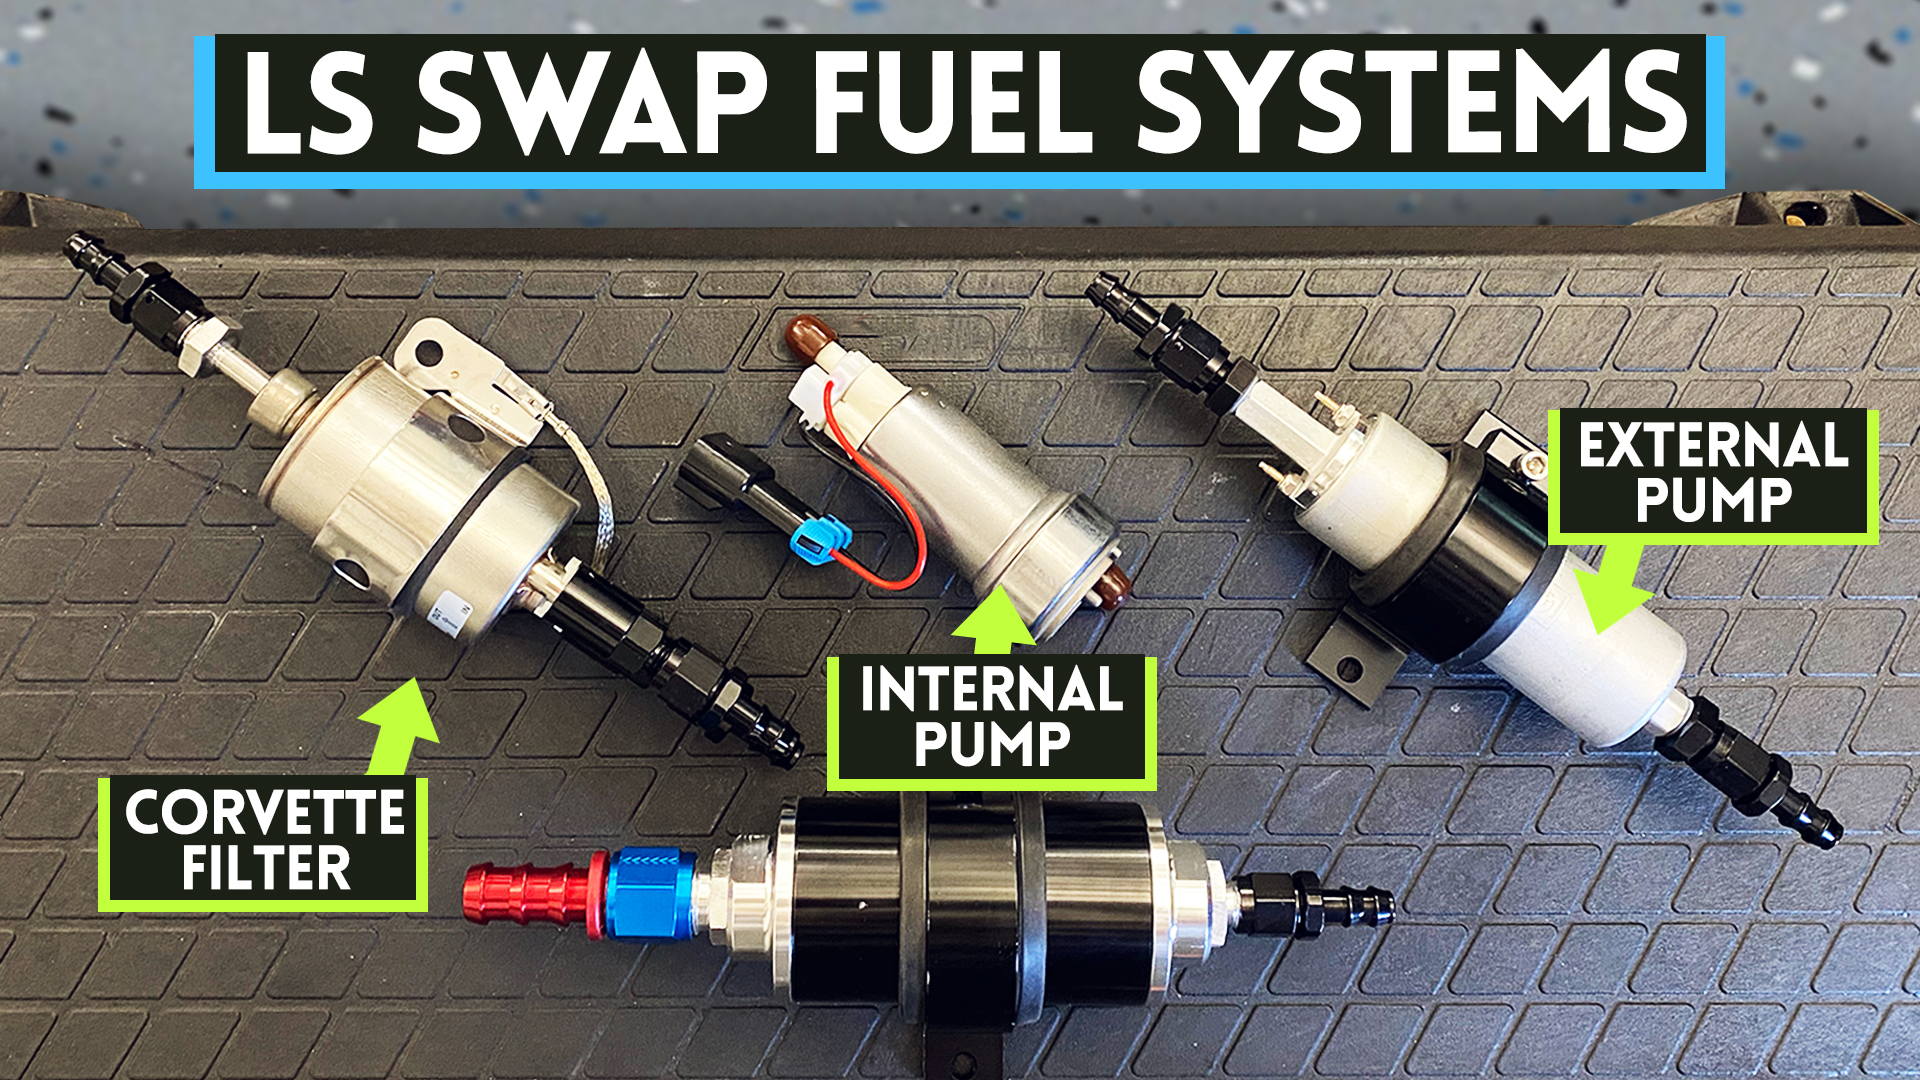 2 LS Swap Fuel Systems YOU can build on the cheap